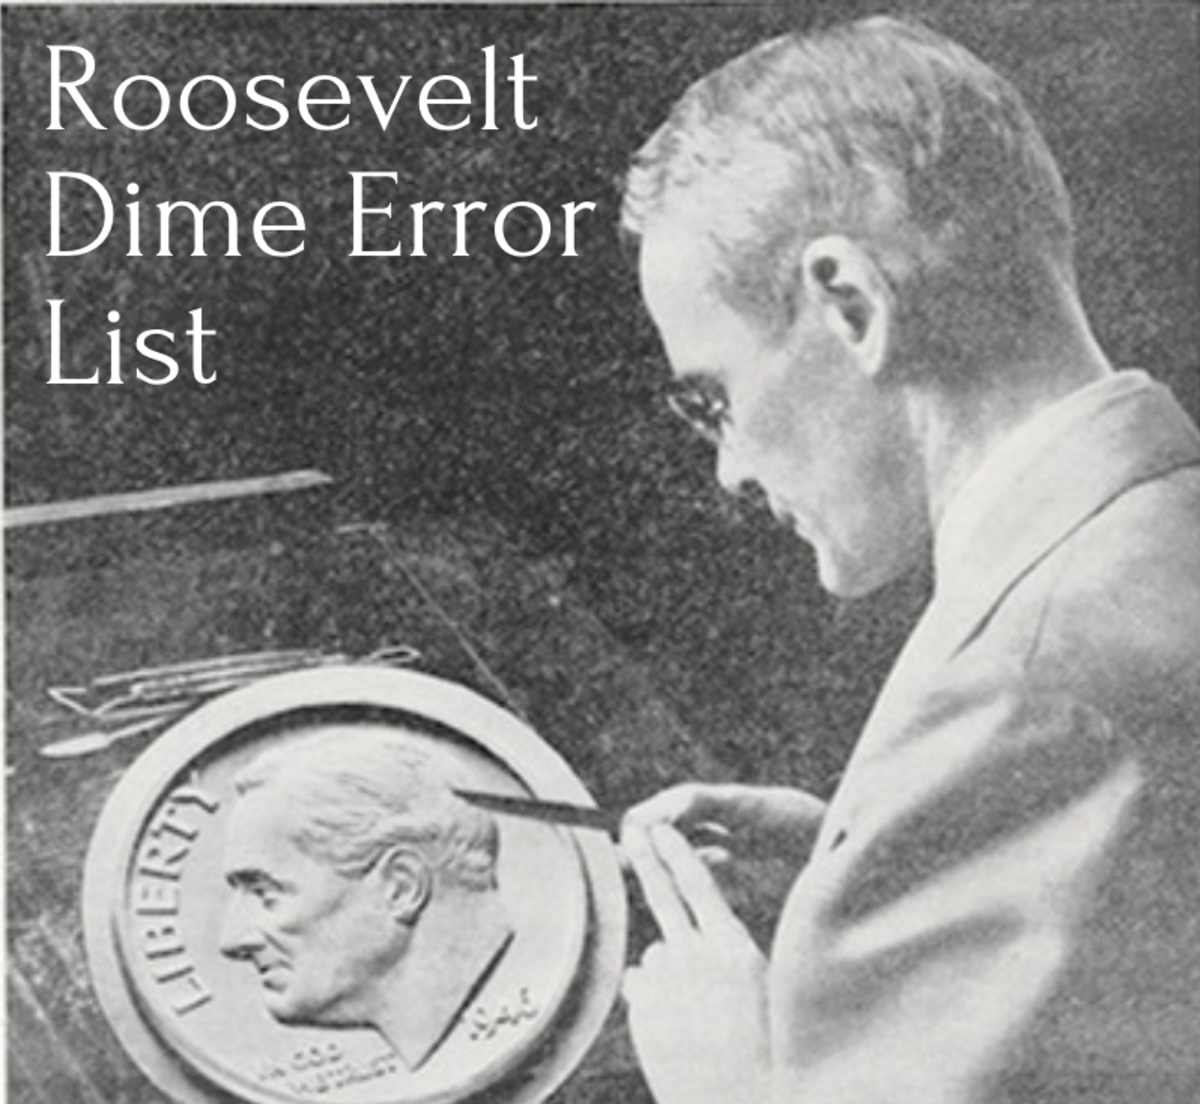 John R. Sinnock at work on plaster model of Roosevelt dime.